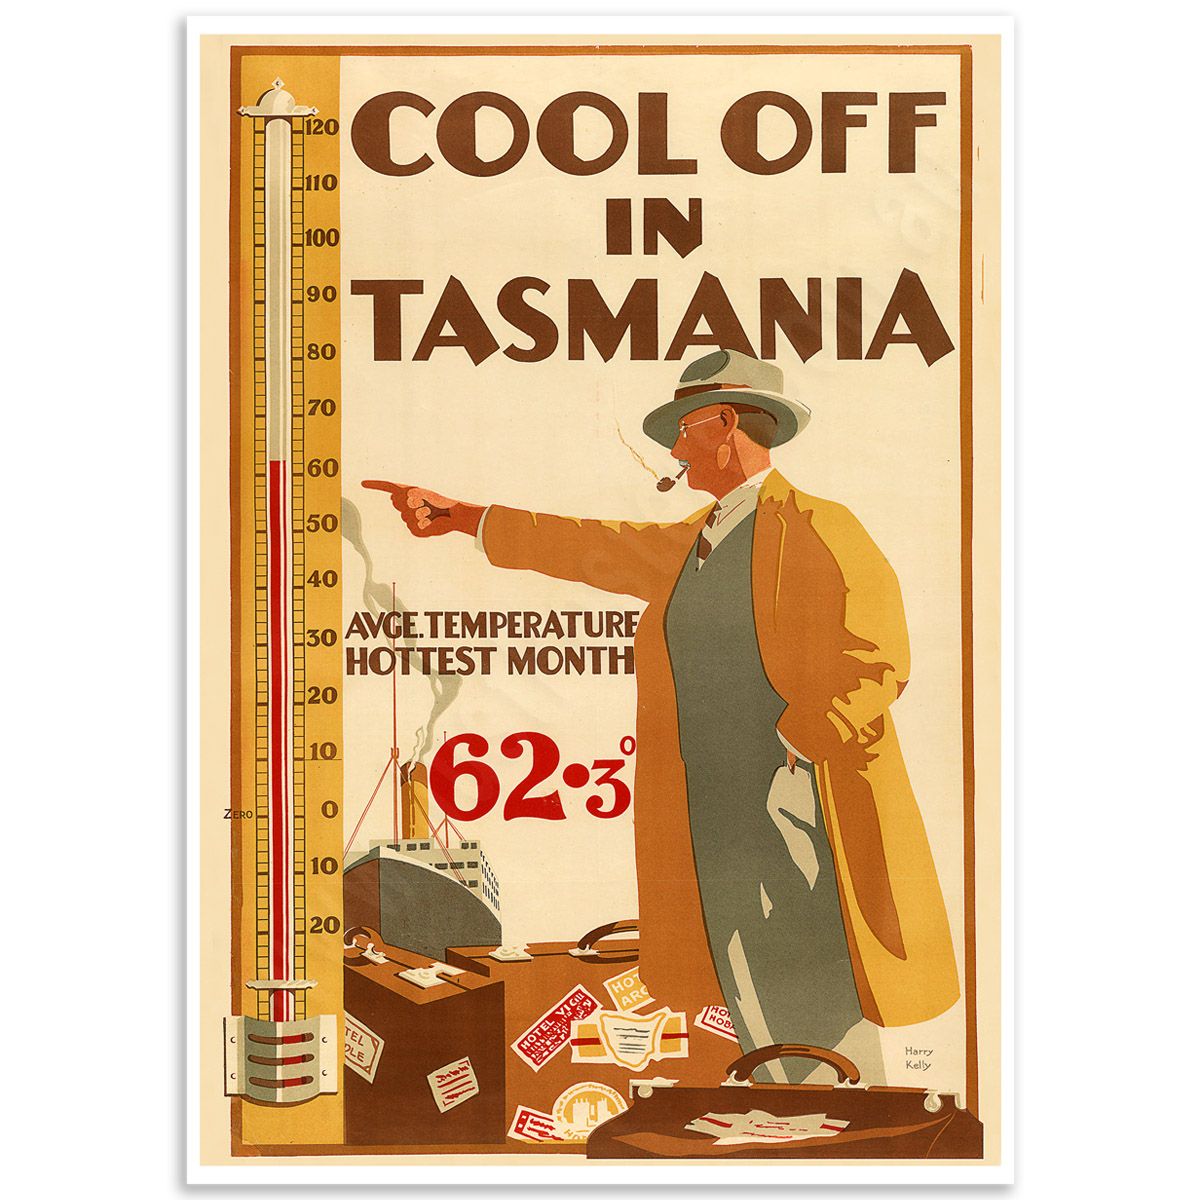 Vintage Travel Poster - Cool off in Tasmania